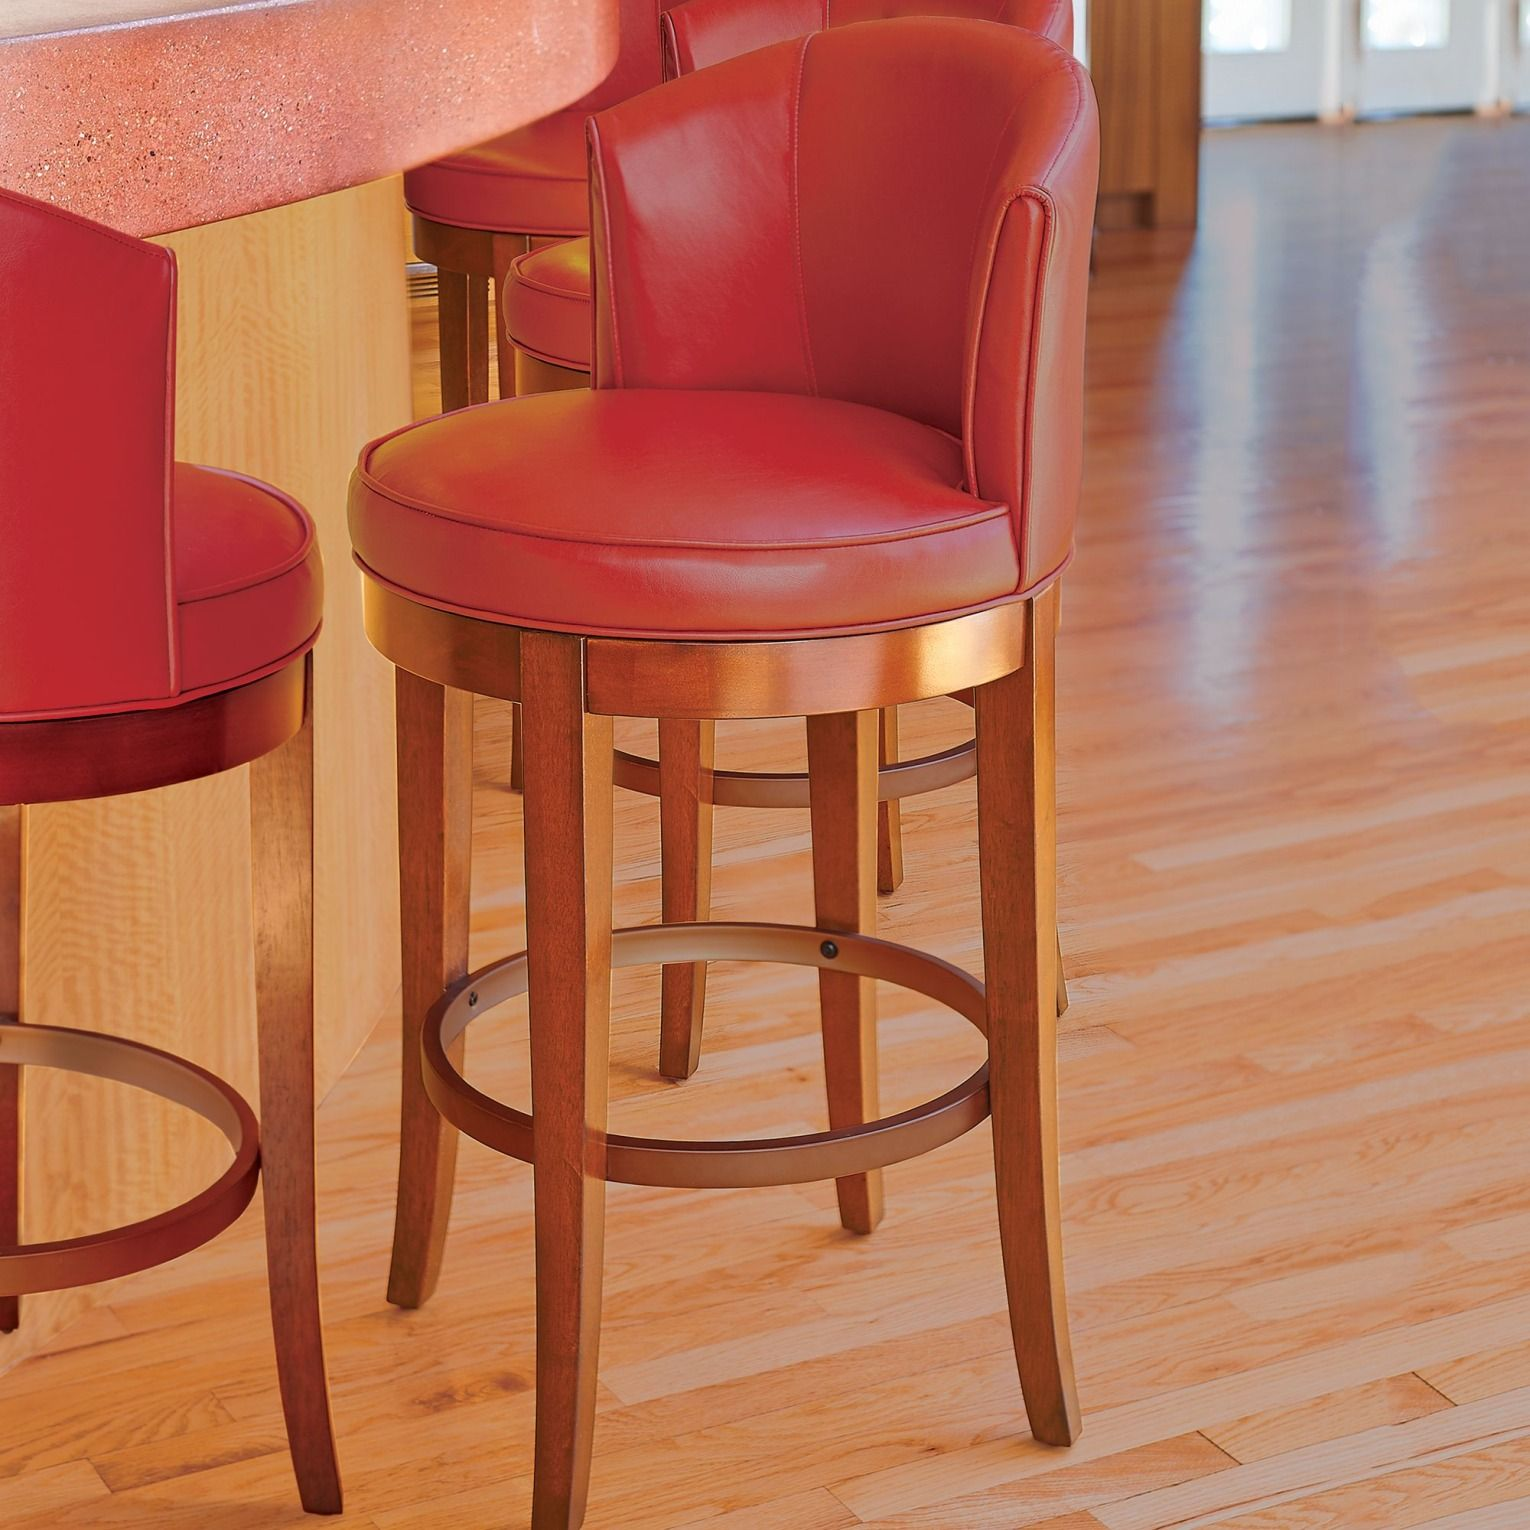 Our Faux Leather Bar Stools With Backs Swivel 360 Degrees